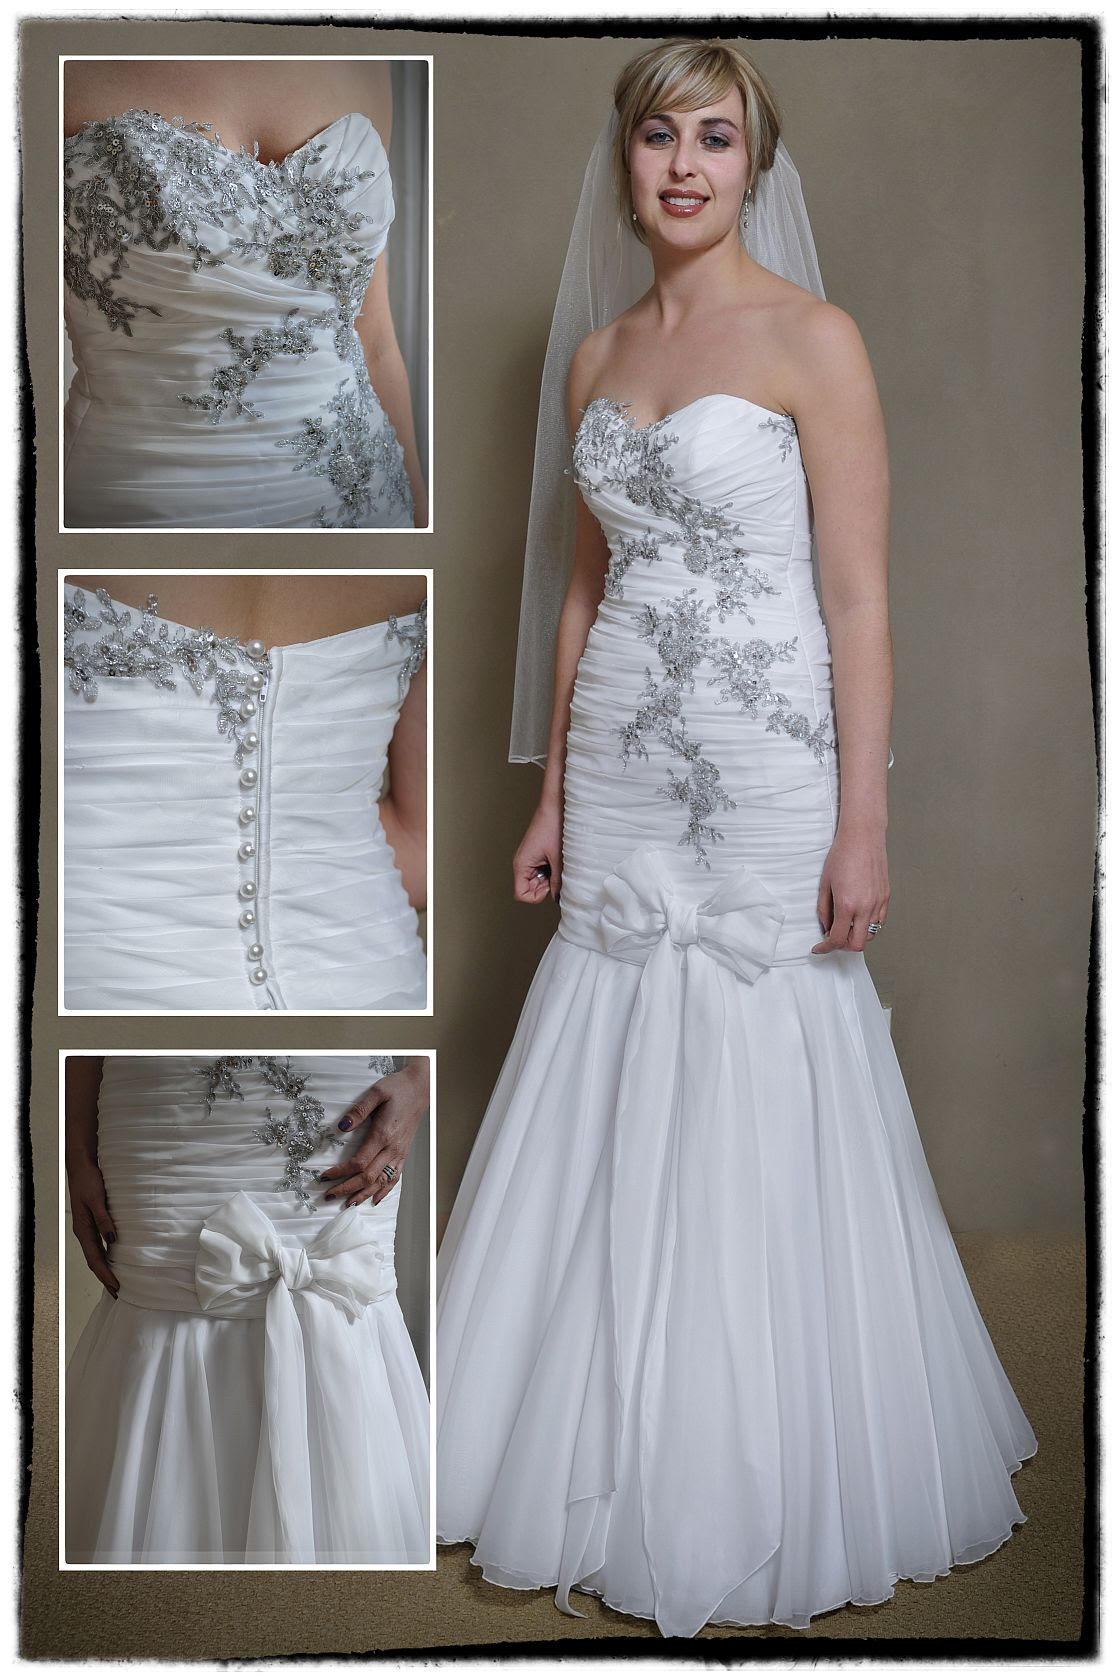 Richelles Wedding Dresses - Bridal Dresses in Vereeniging ...